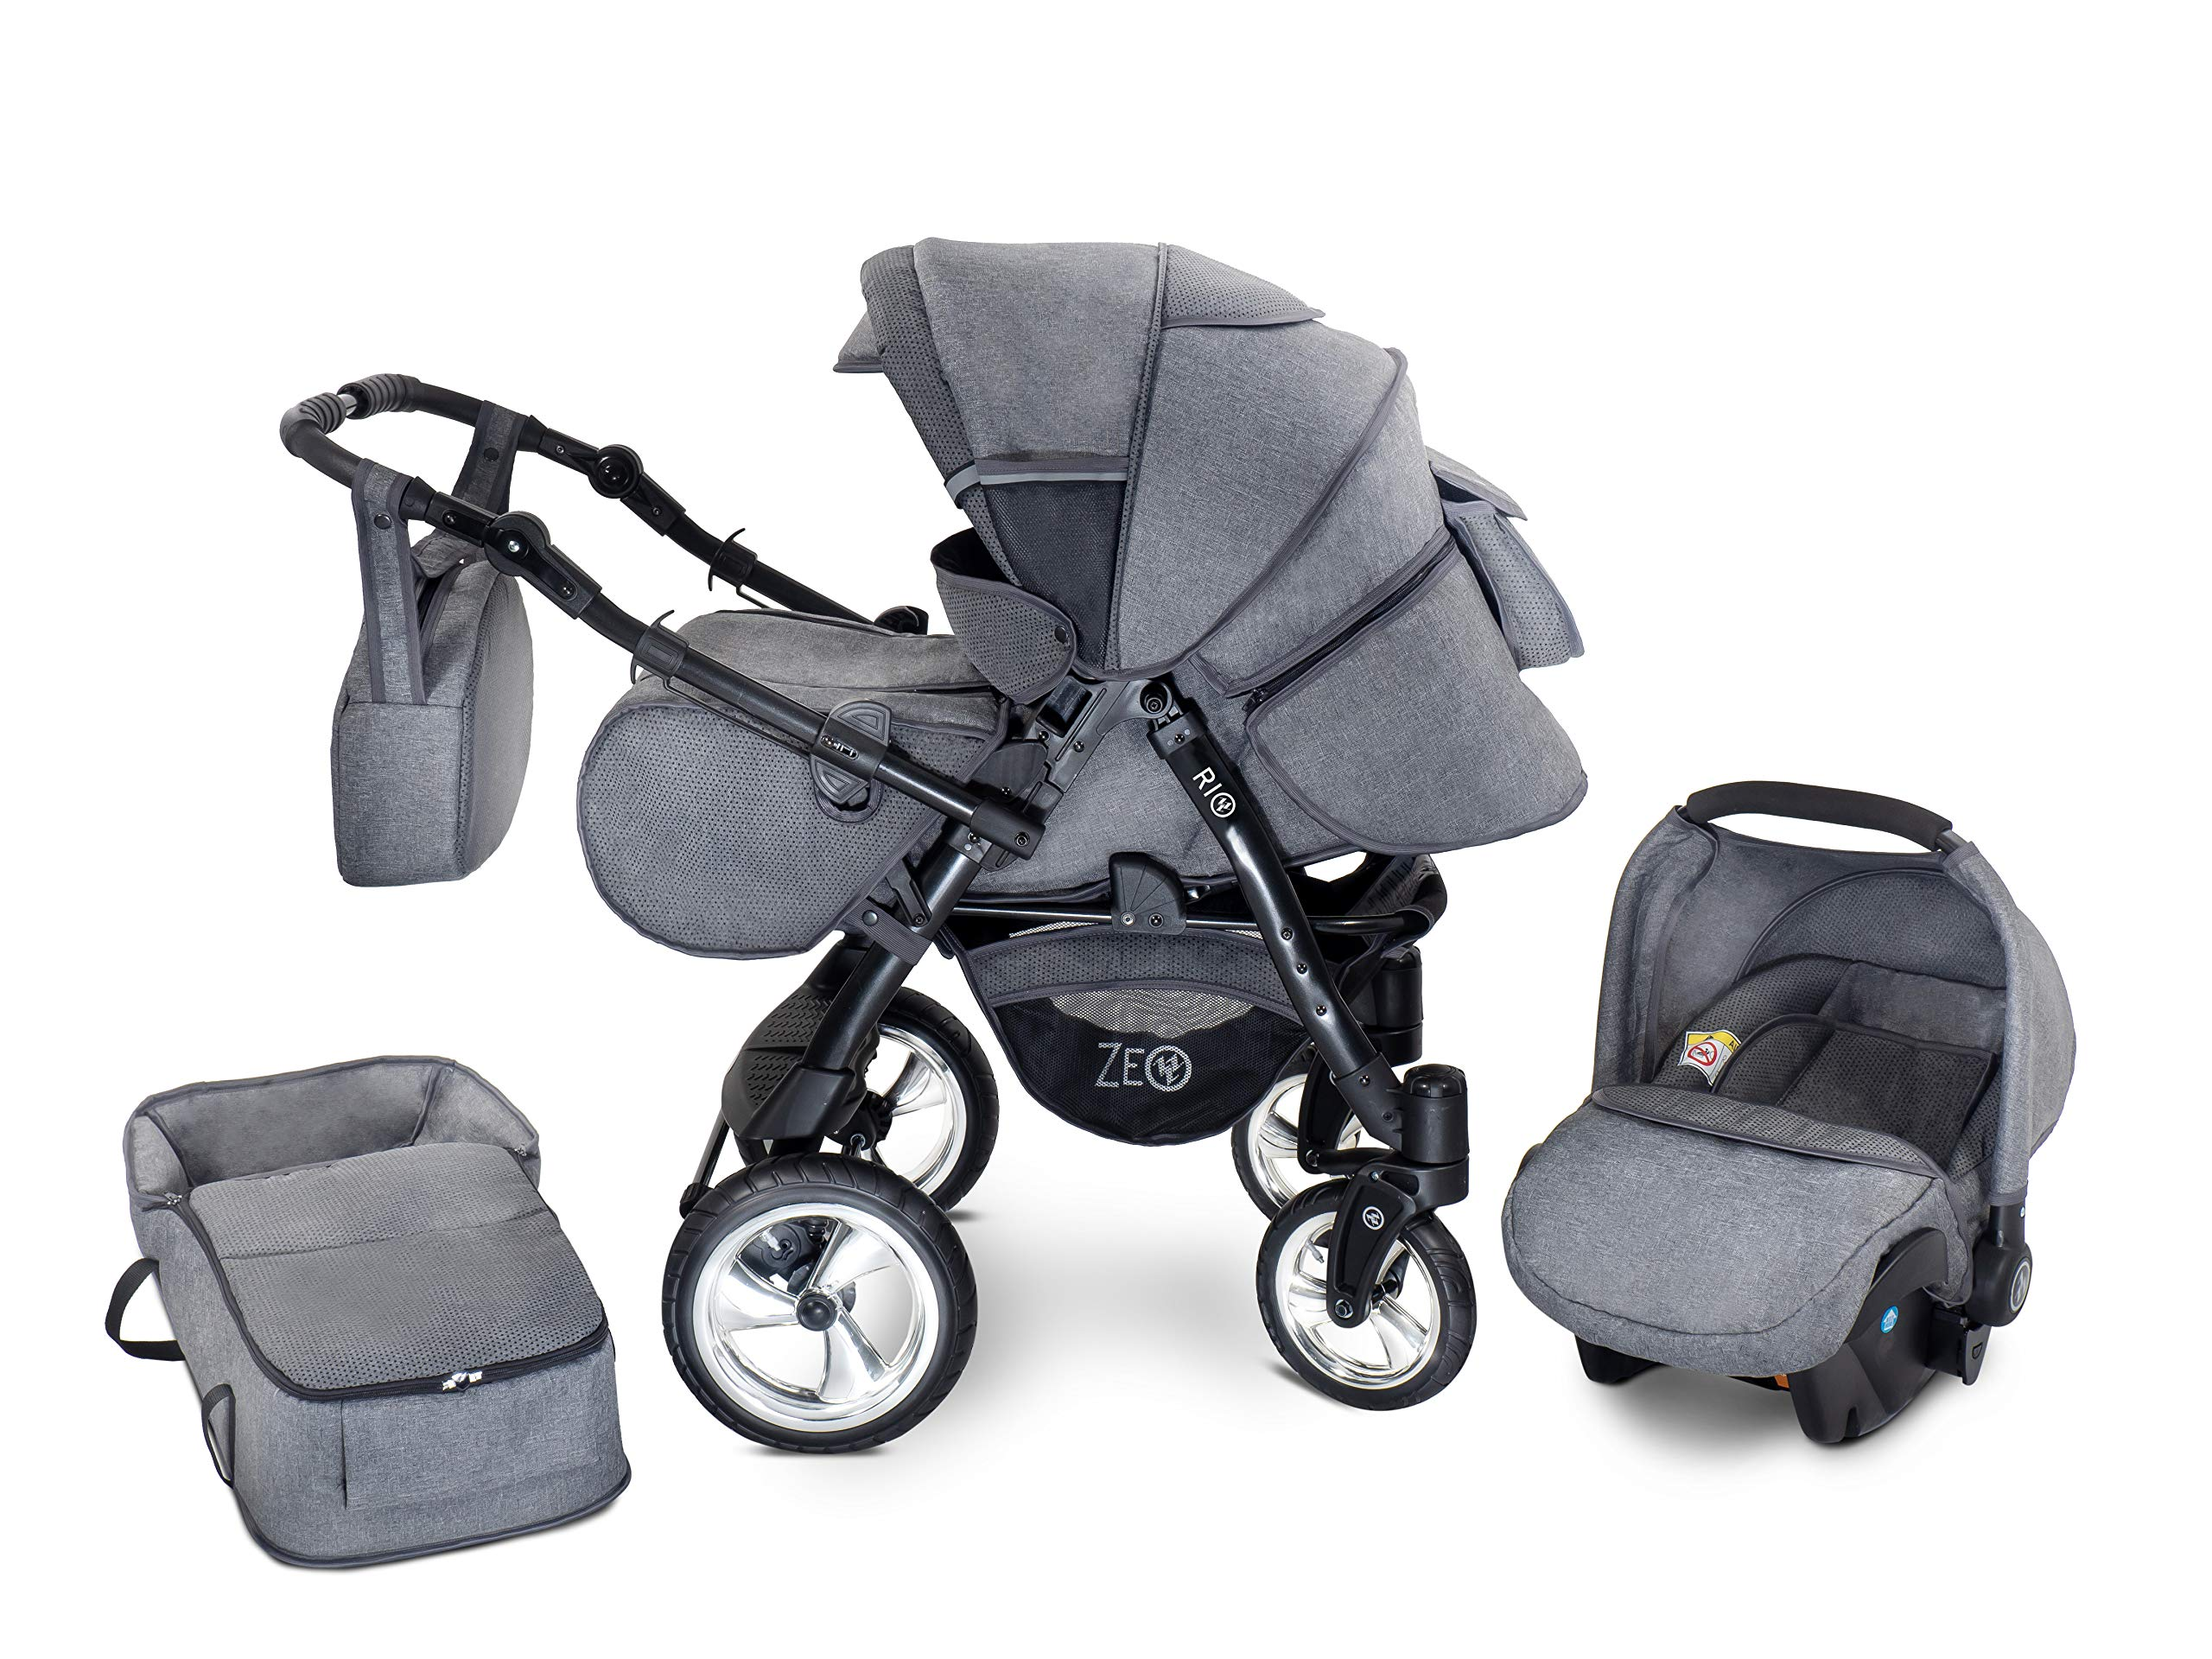 Baby Pram Zeo Rio 3in1 Set - All You Need! carrycot Gondola Buggy Pushchair car seat (R3) Zeo 3 in 1 combination stroller complete set, with reversible handle to the buggy, child car seat or baby carriage Has 360 ° swiveling wheels, two-fold suspension, four-stage backrest, five-position adjustable footrest and a five-point safety belt The stroller can be easily converted into other functions and easy to transport 1